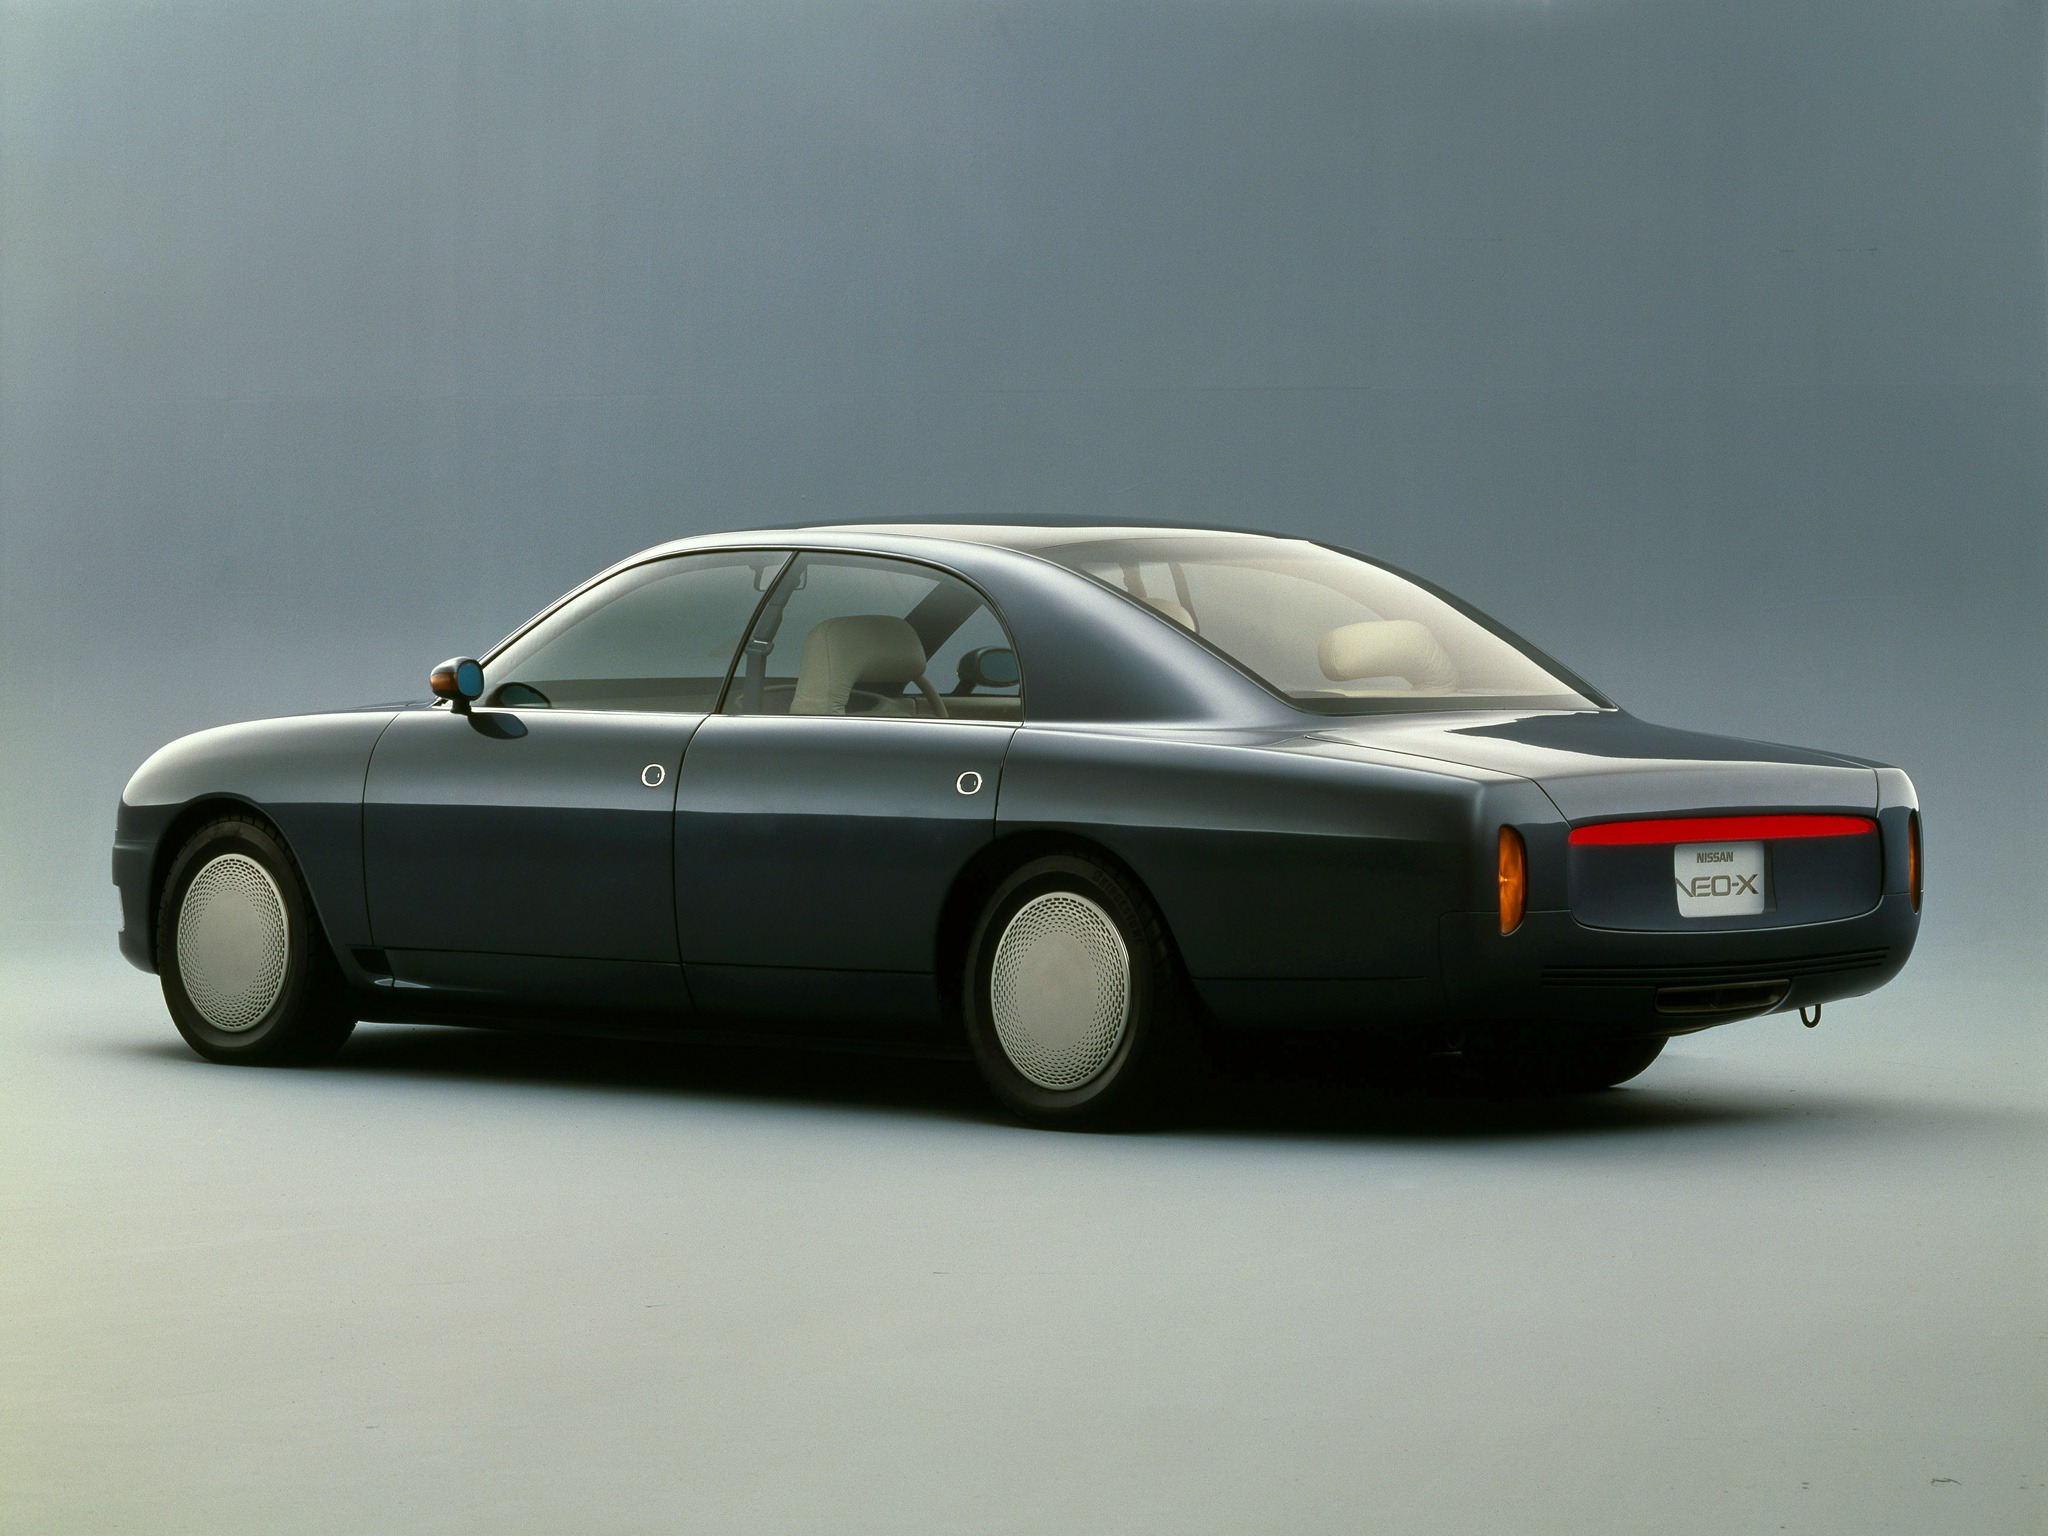 Nissan Neo-X Concept (1989) – Old Concept Cars